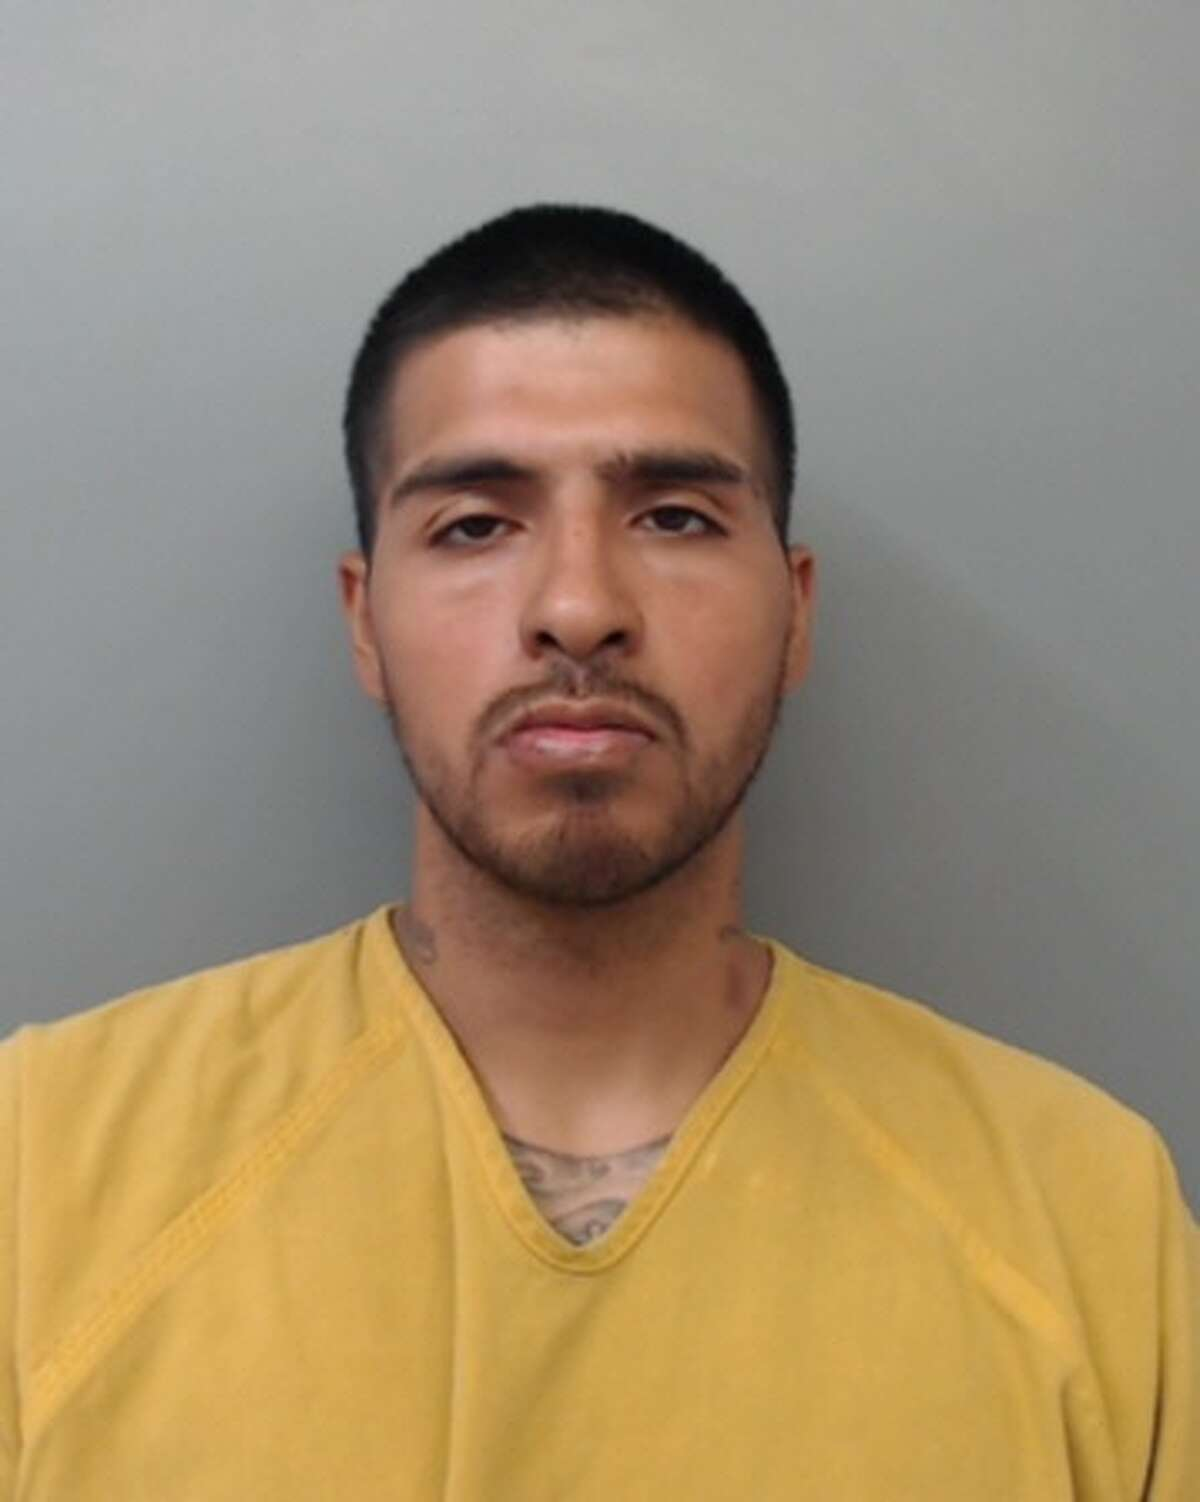 Raul Nieto Jr., 29, was charged with three counts of robbery.